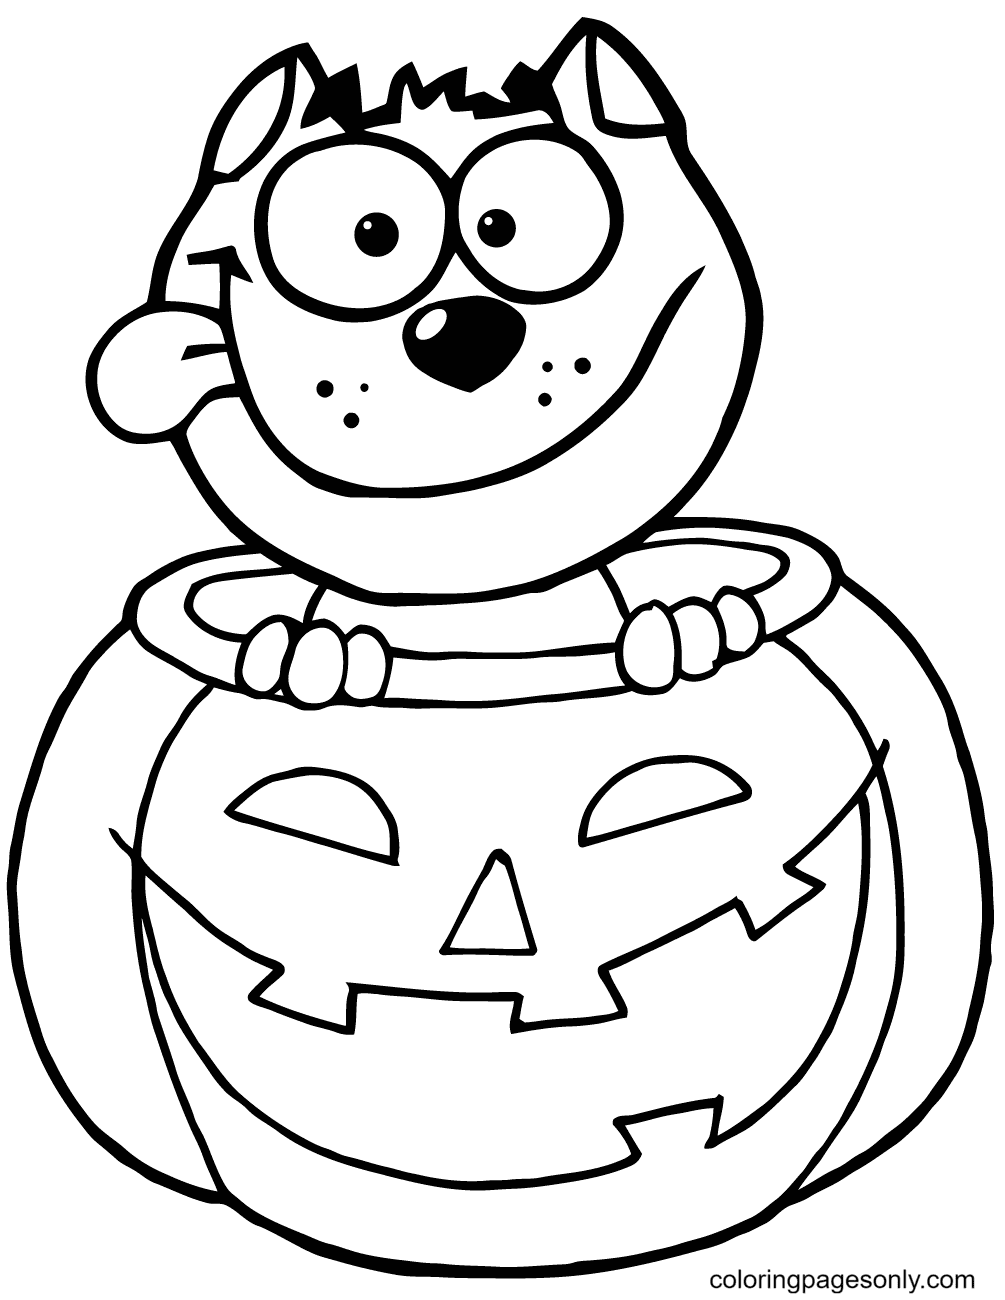 Black Cat Sitting Inside of a Pumpkin Coloring Page